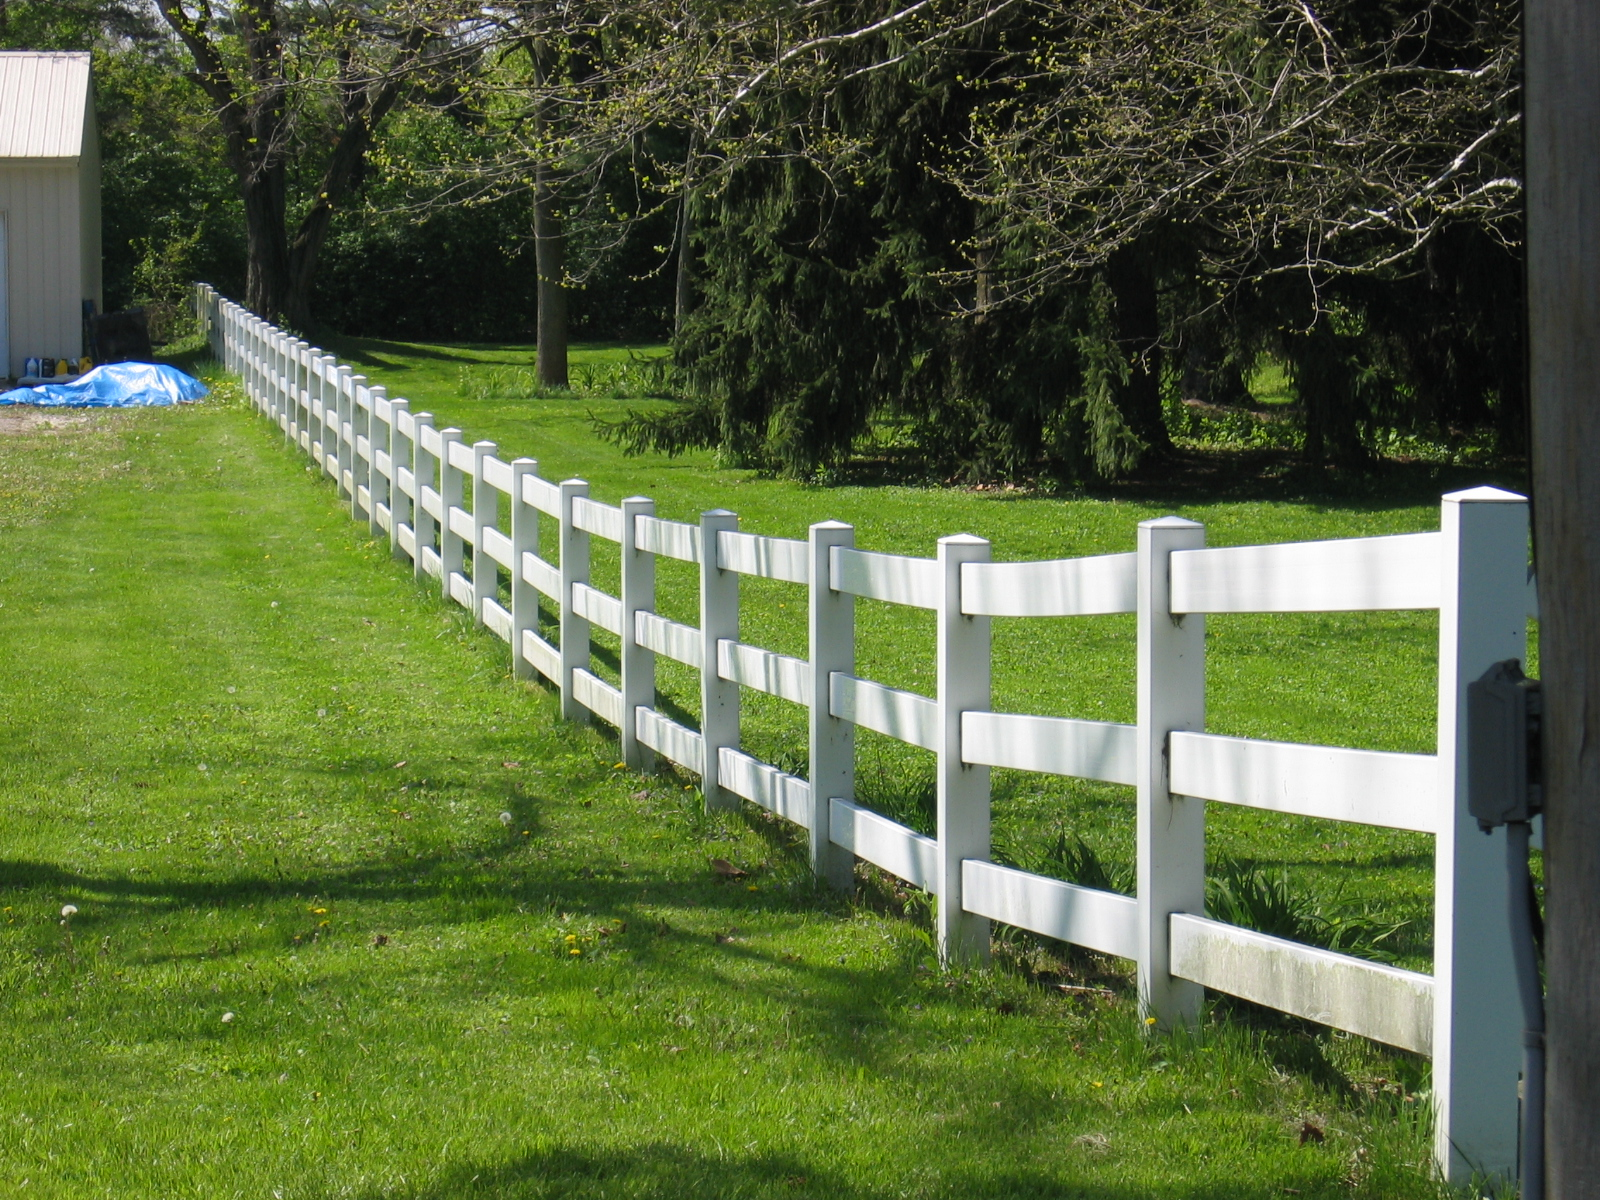 Wood picket fence and Wood fences